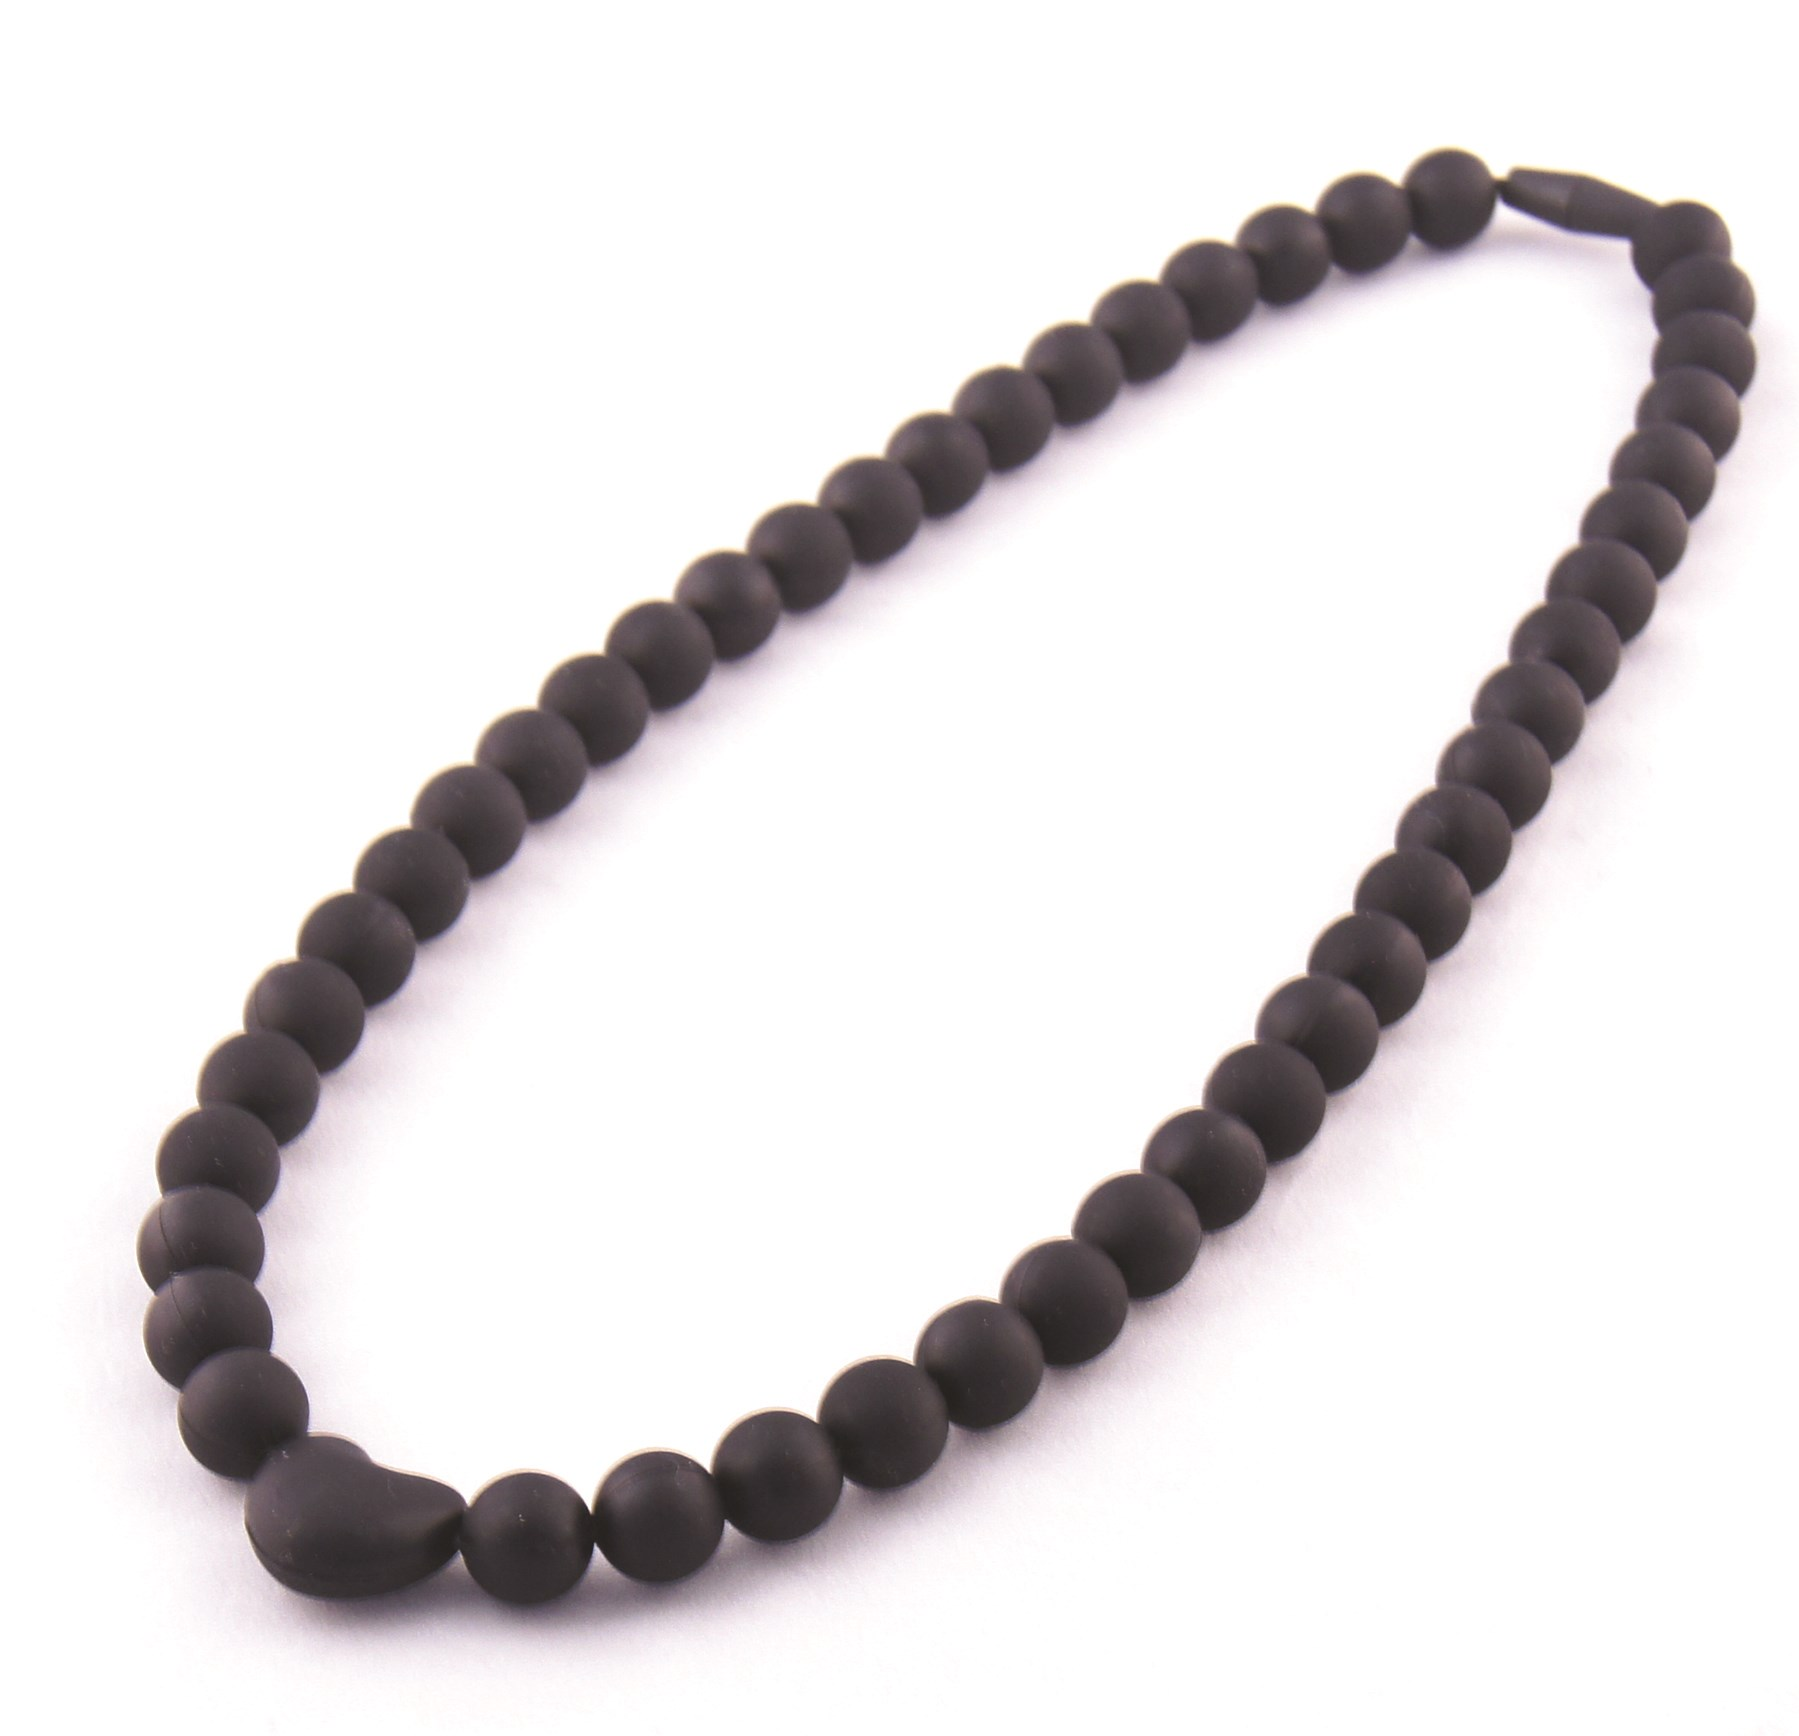 Koo-di Baby Choos Teether Necklace (Black Heart)